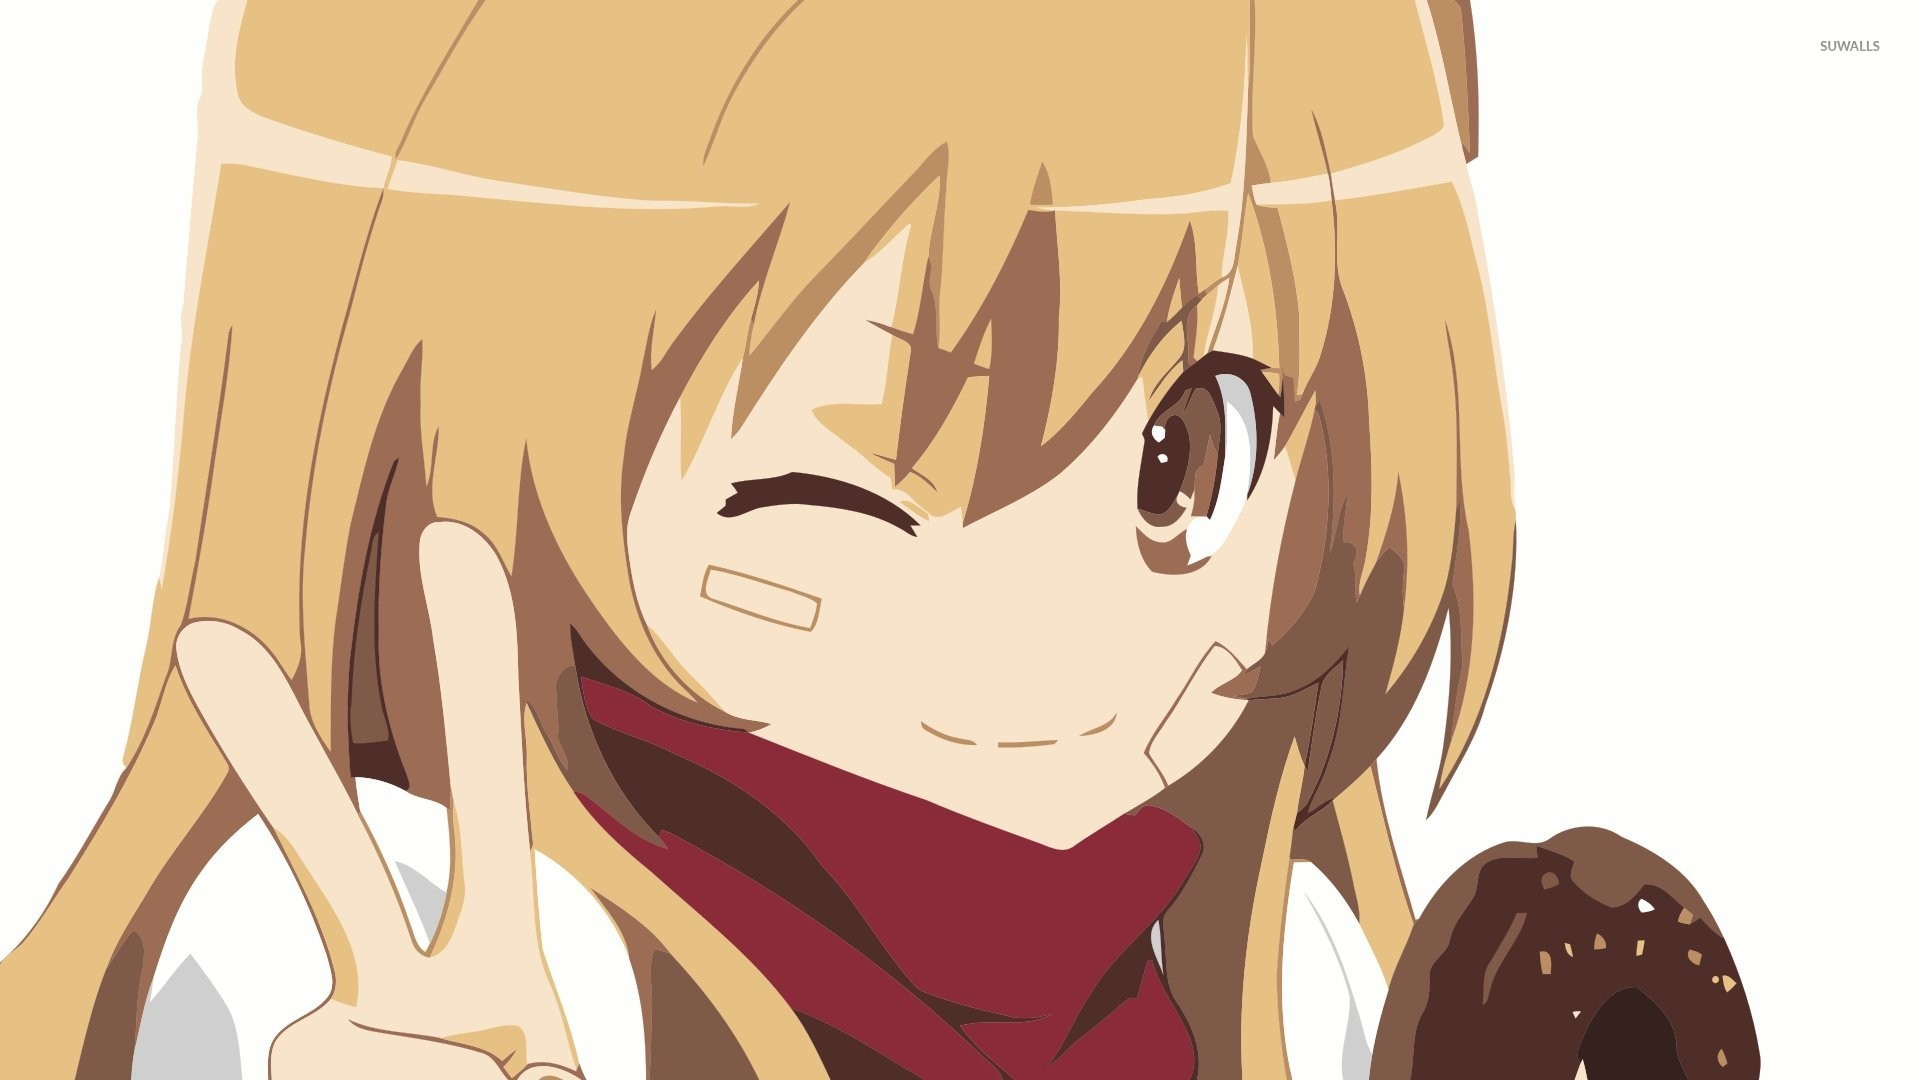 Toradora wallpaper hd